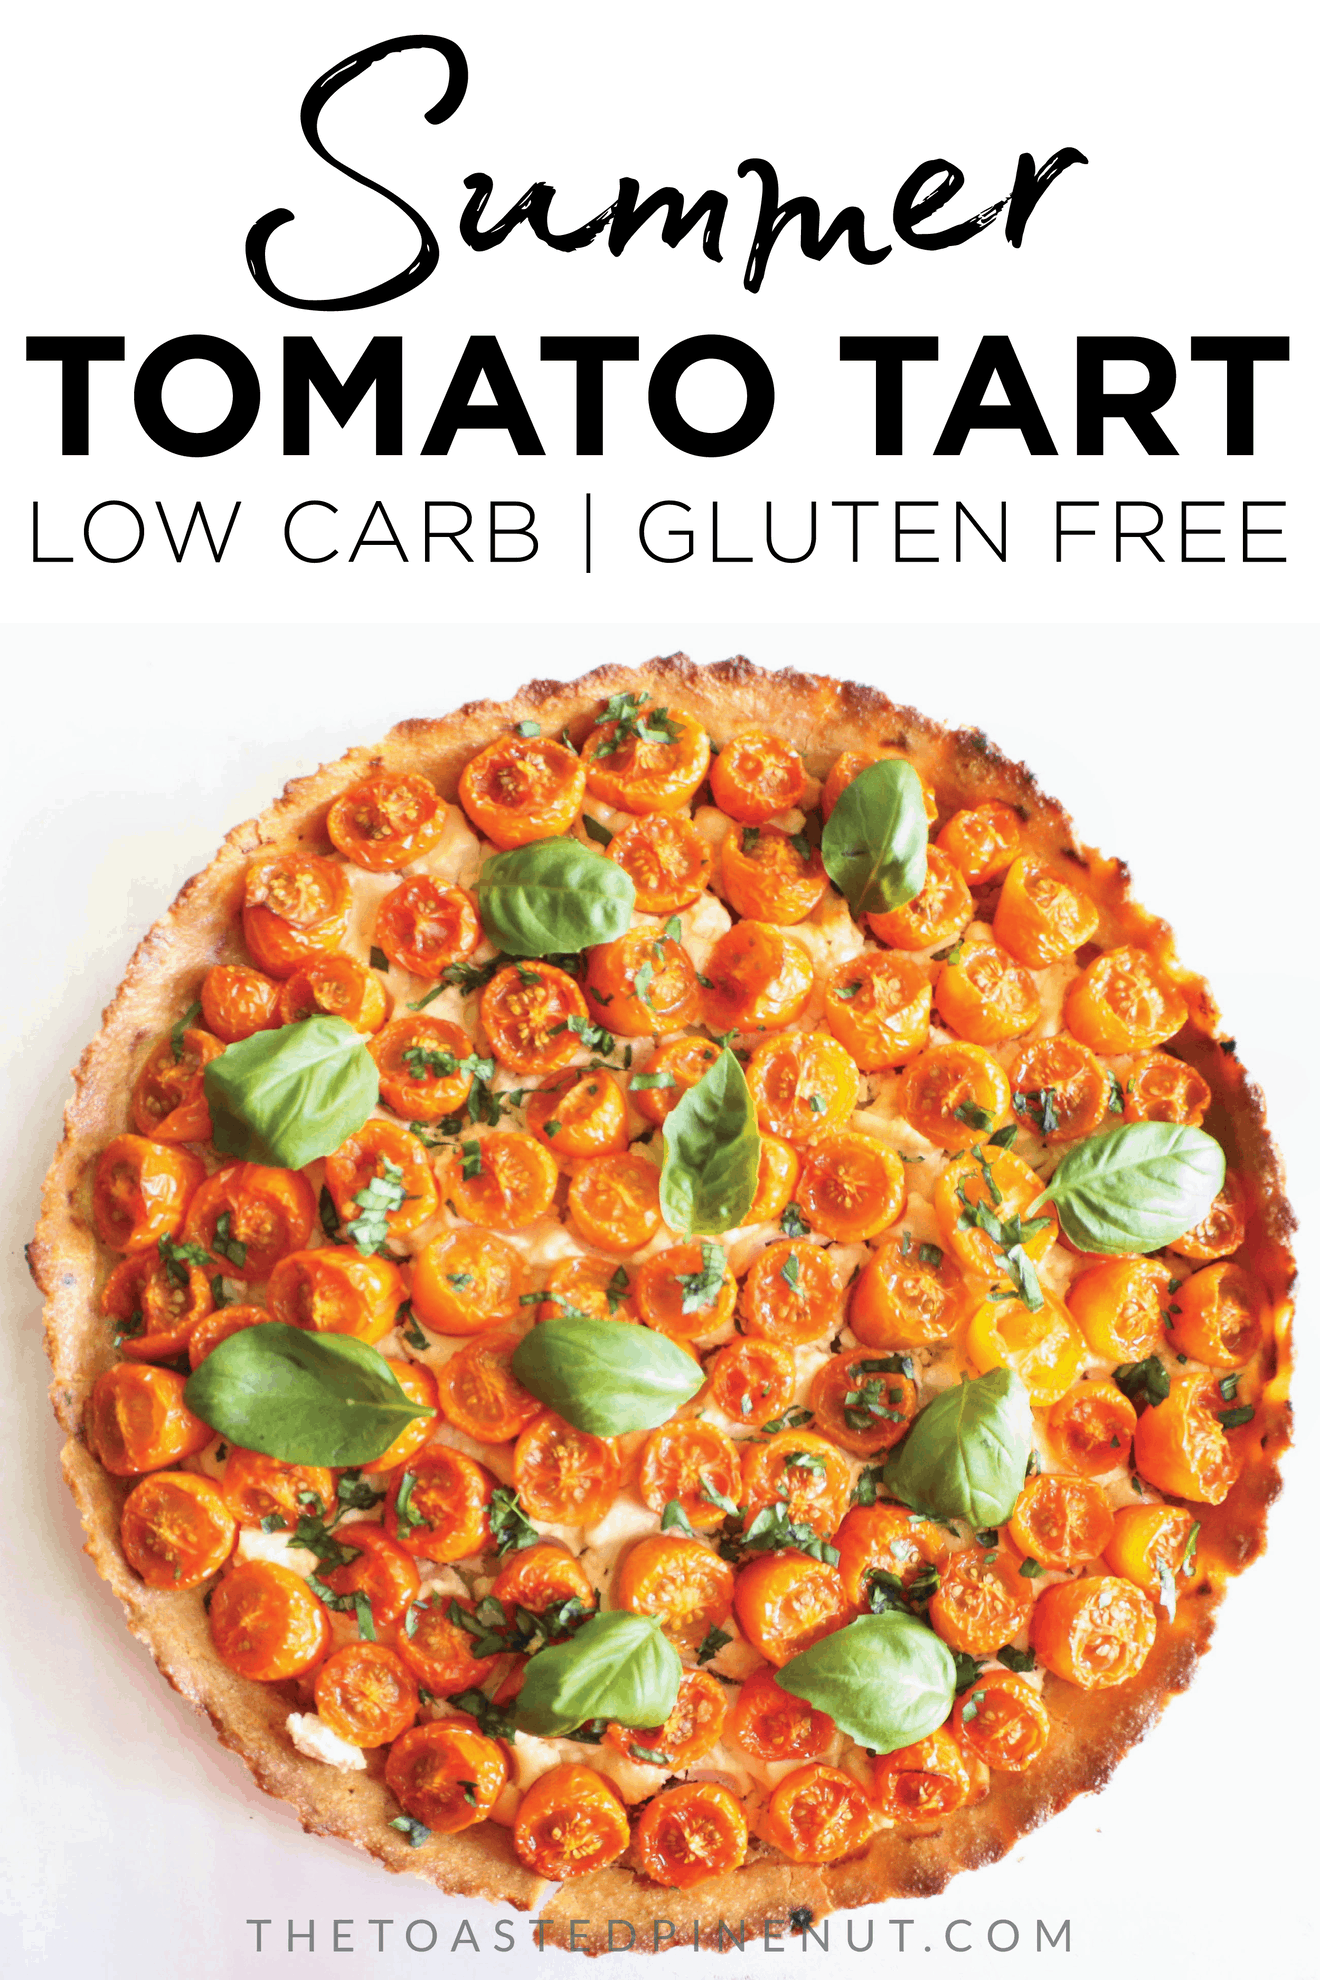 This Summer Tomato Tart is such a fun recipe! The low carb + gluten free crust is so light and buttery, and I can't help but smile at those cute tomatoes! thetoastedpinenut.com #thetoastedpinenut #tomato #tart #summerrecipe #almondflourcrust #almondflour #brunchrecipe #glutenfree